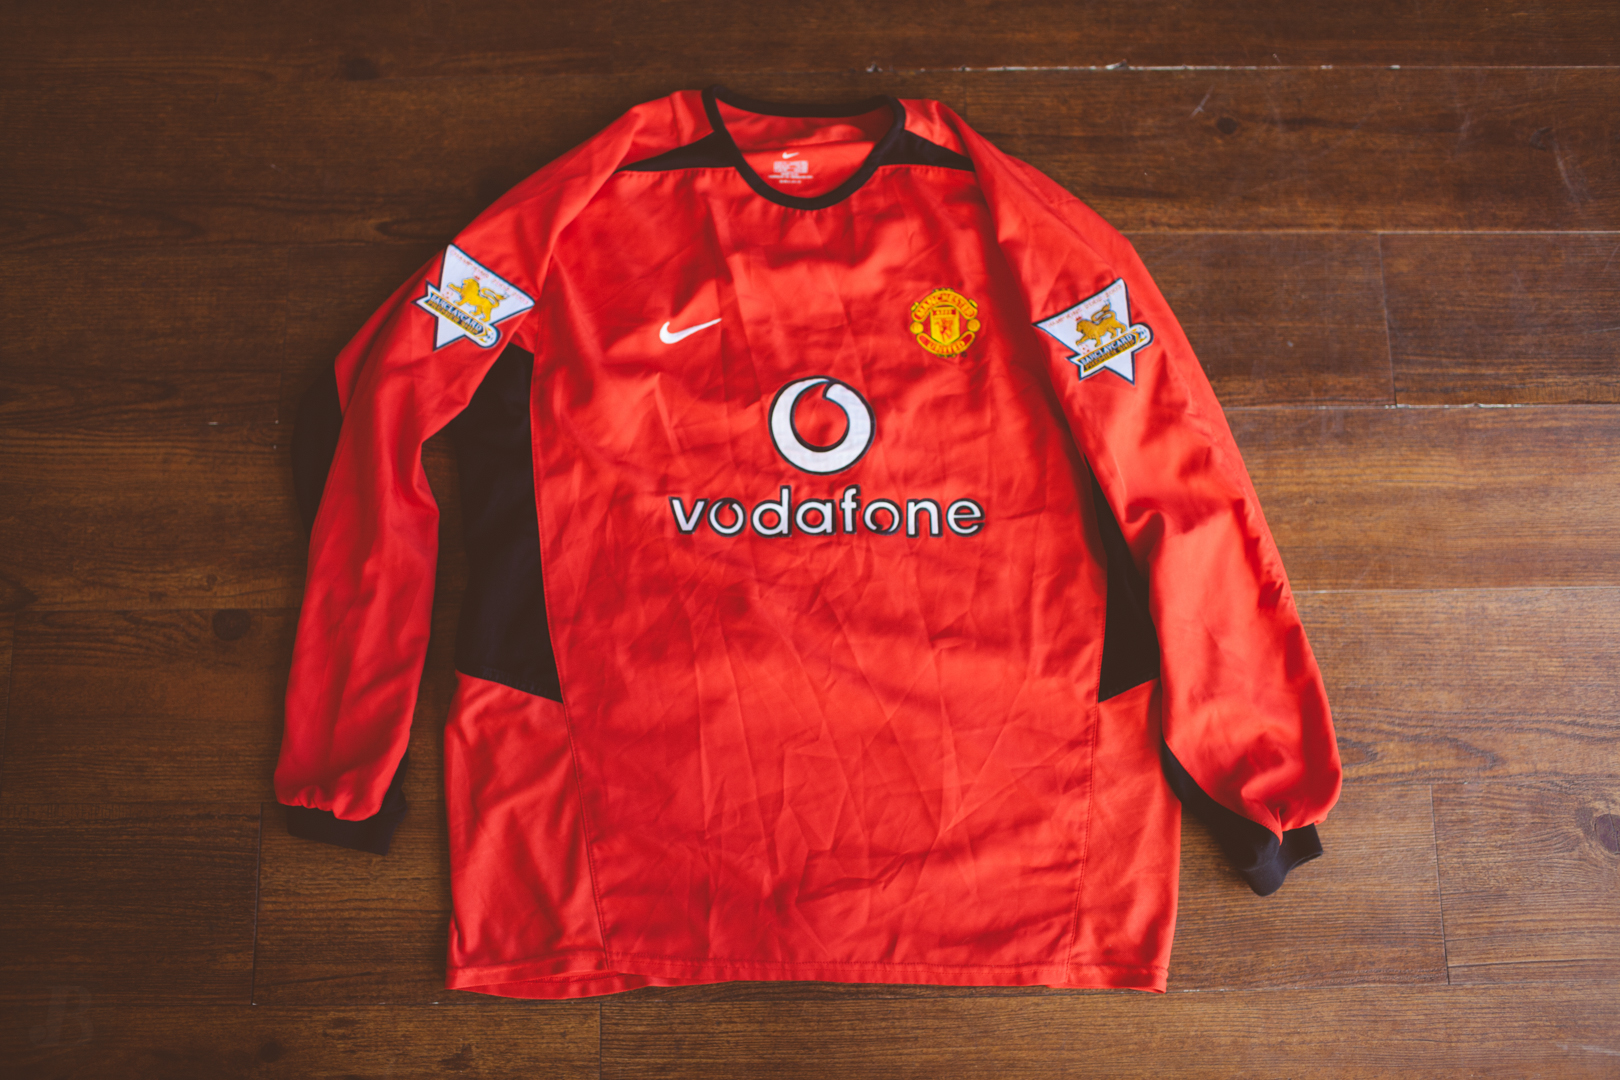 new style 4c592 c0951 Nike Manchester United Beckham Jersey XL from Kings Court Vintage